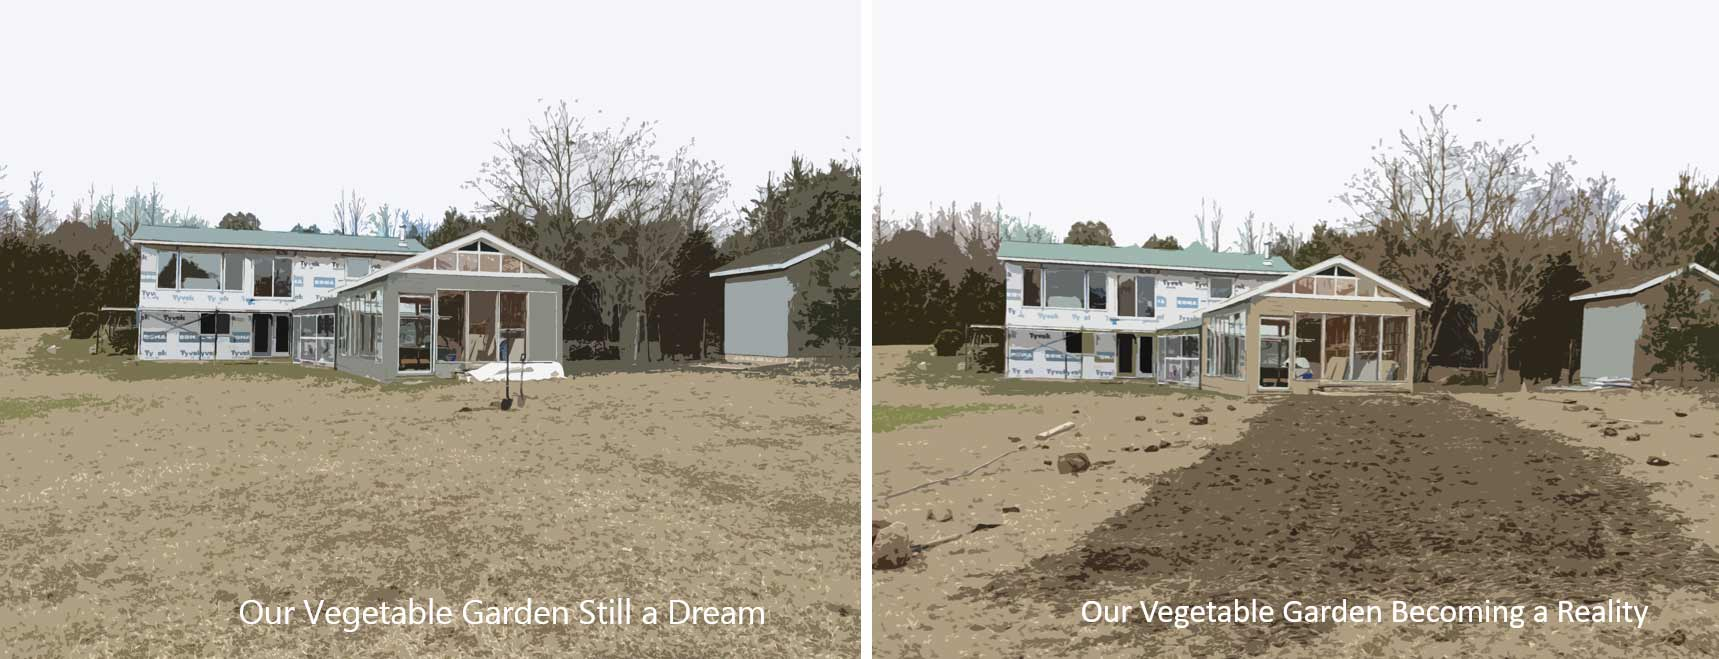 A before and after comparison of the plot of land in front of the greenhouse.